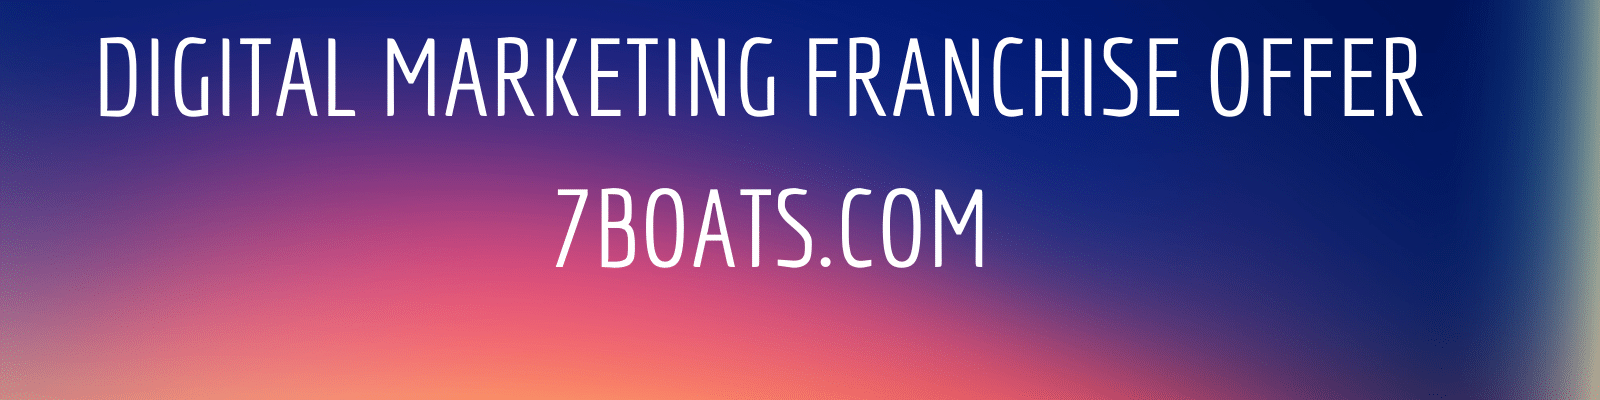 digital marketing franchise offer from 7boats